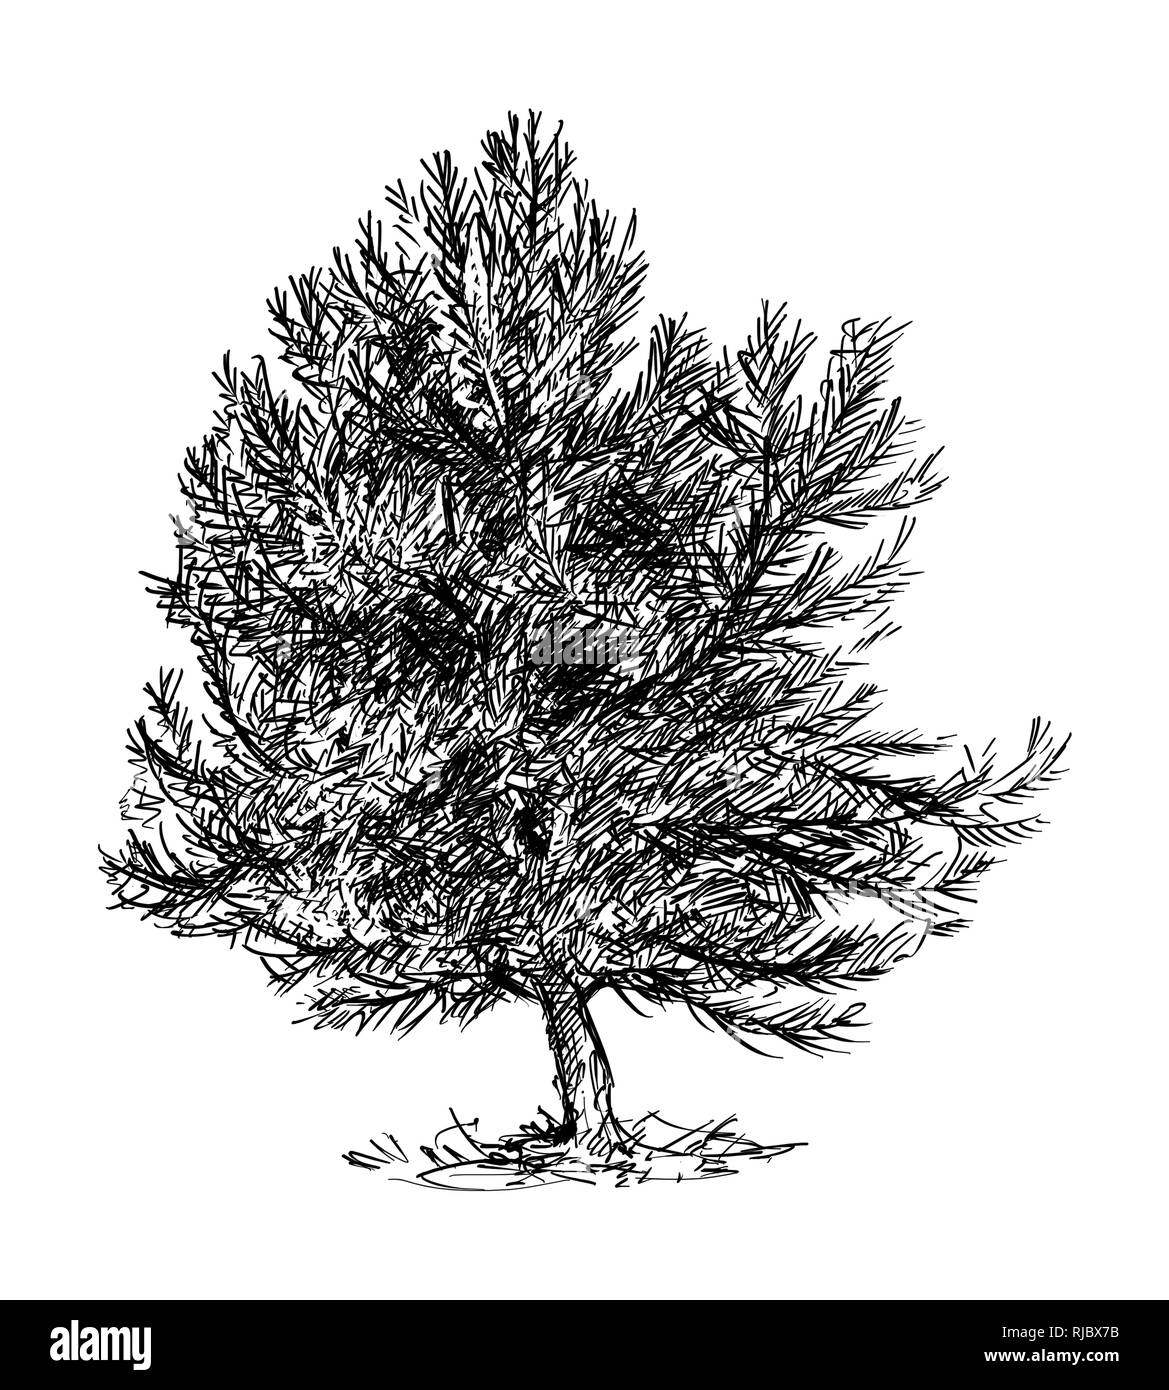 Cartoon Drawing of Small Pine Conifer Tree - Stock Image